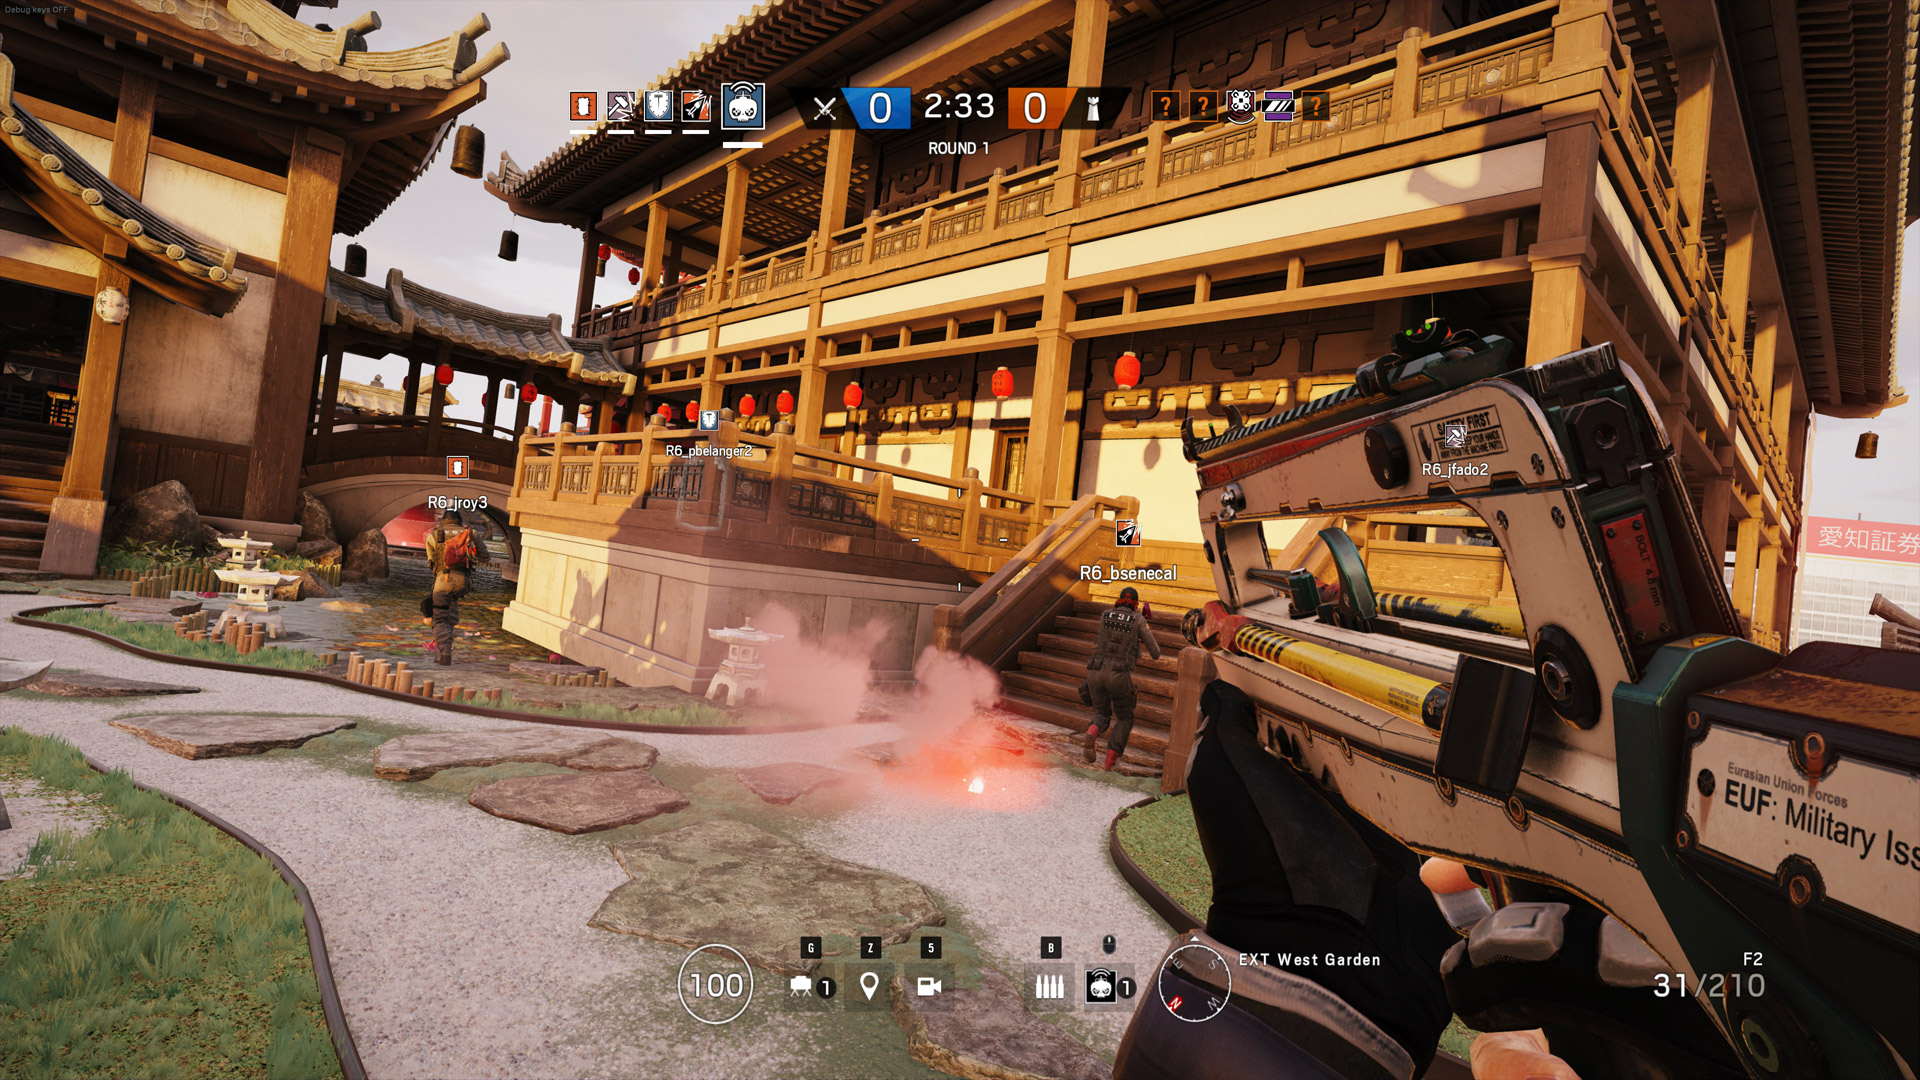 The redemption of Rainbow Six Siege